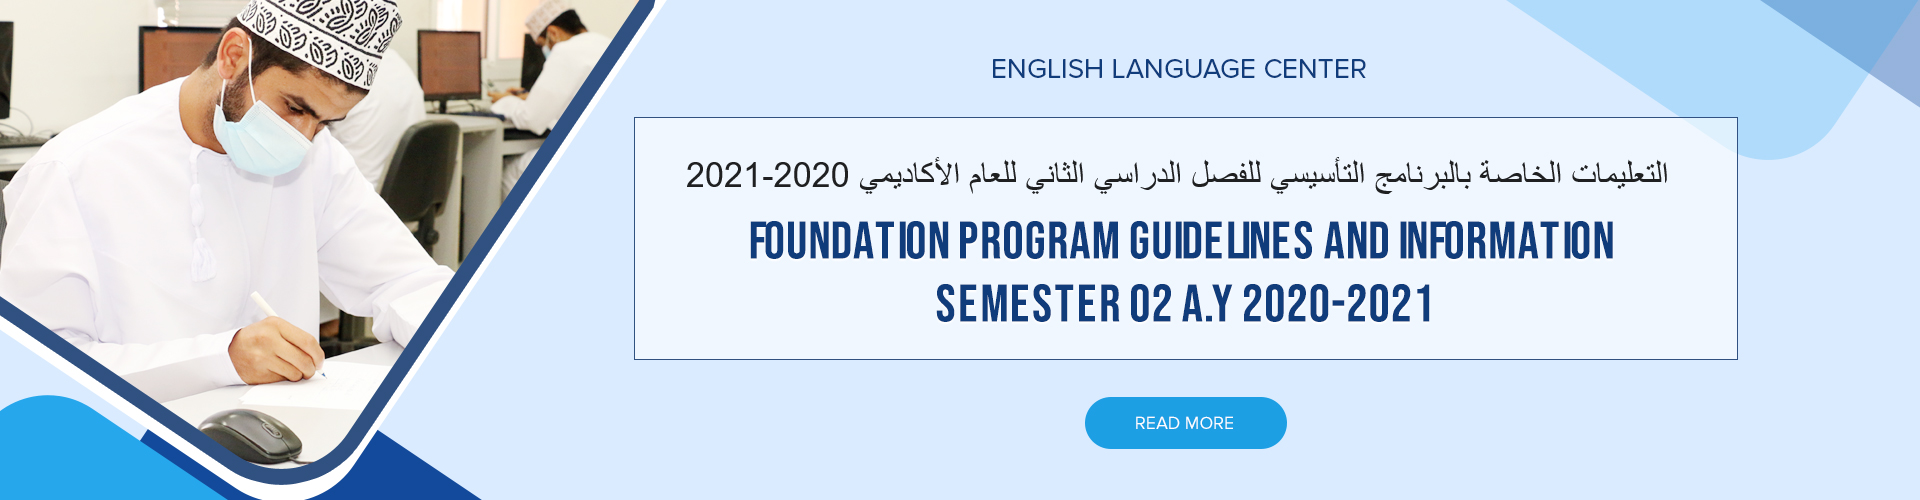 Foundation Program Guidelines and Information - Semester 02 A.Y 2020-2021